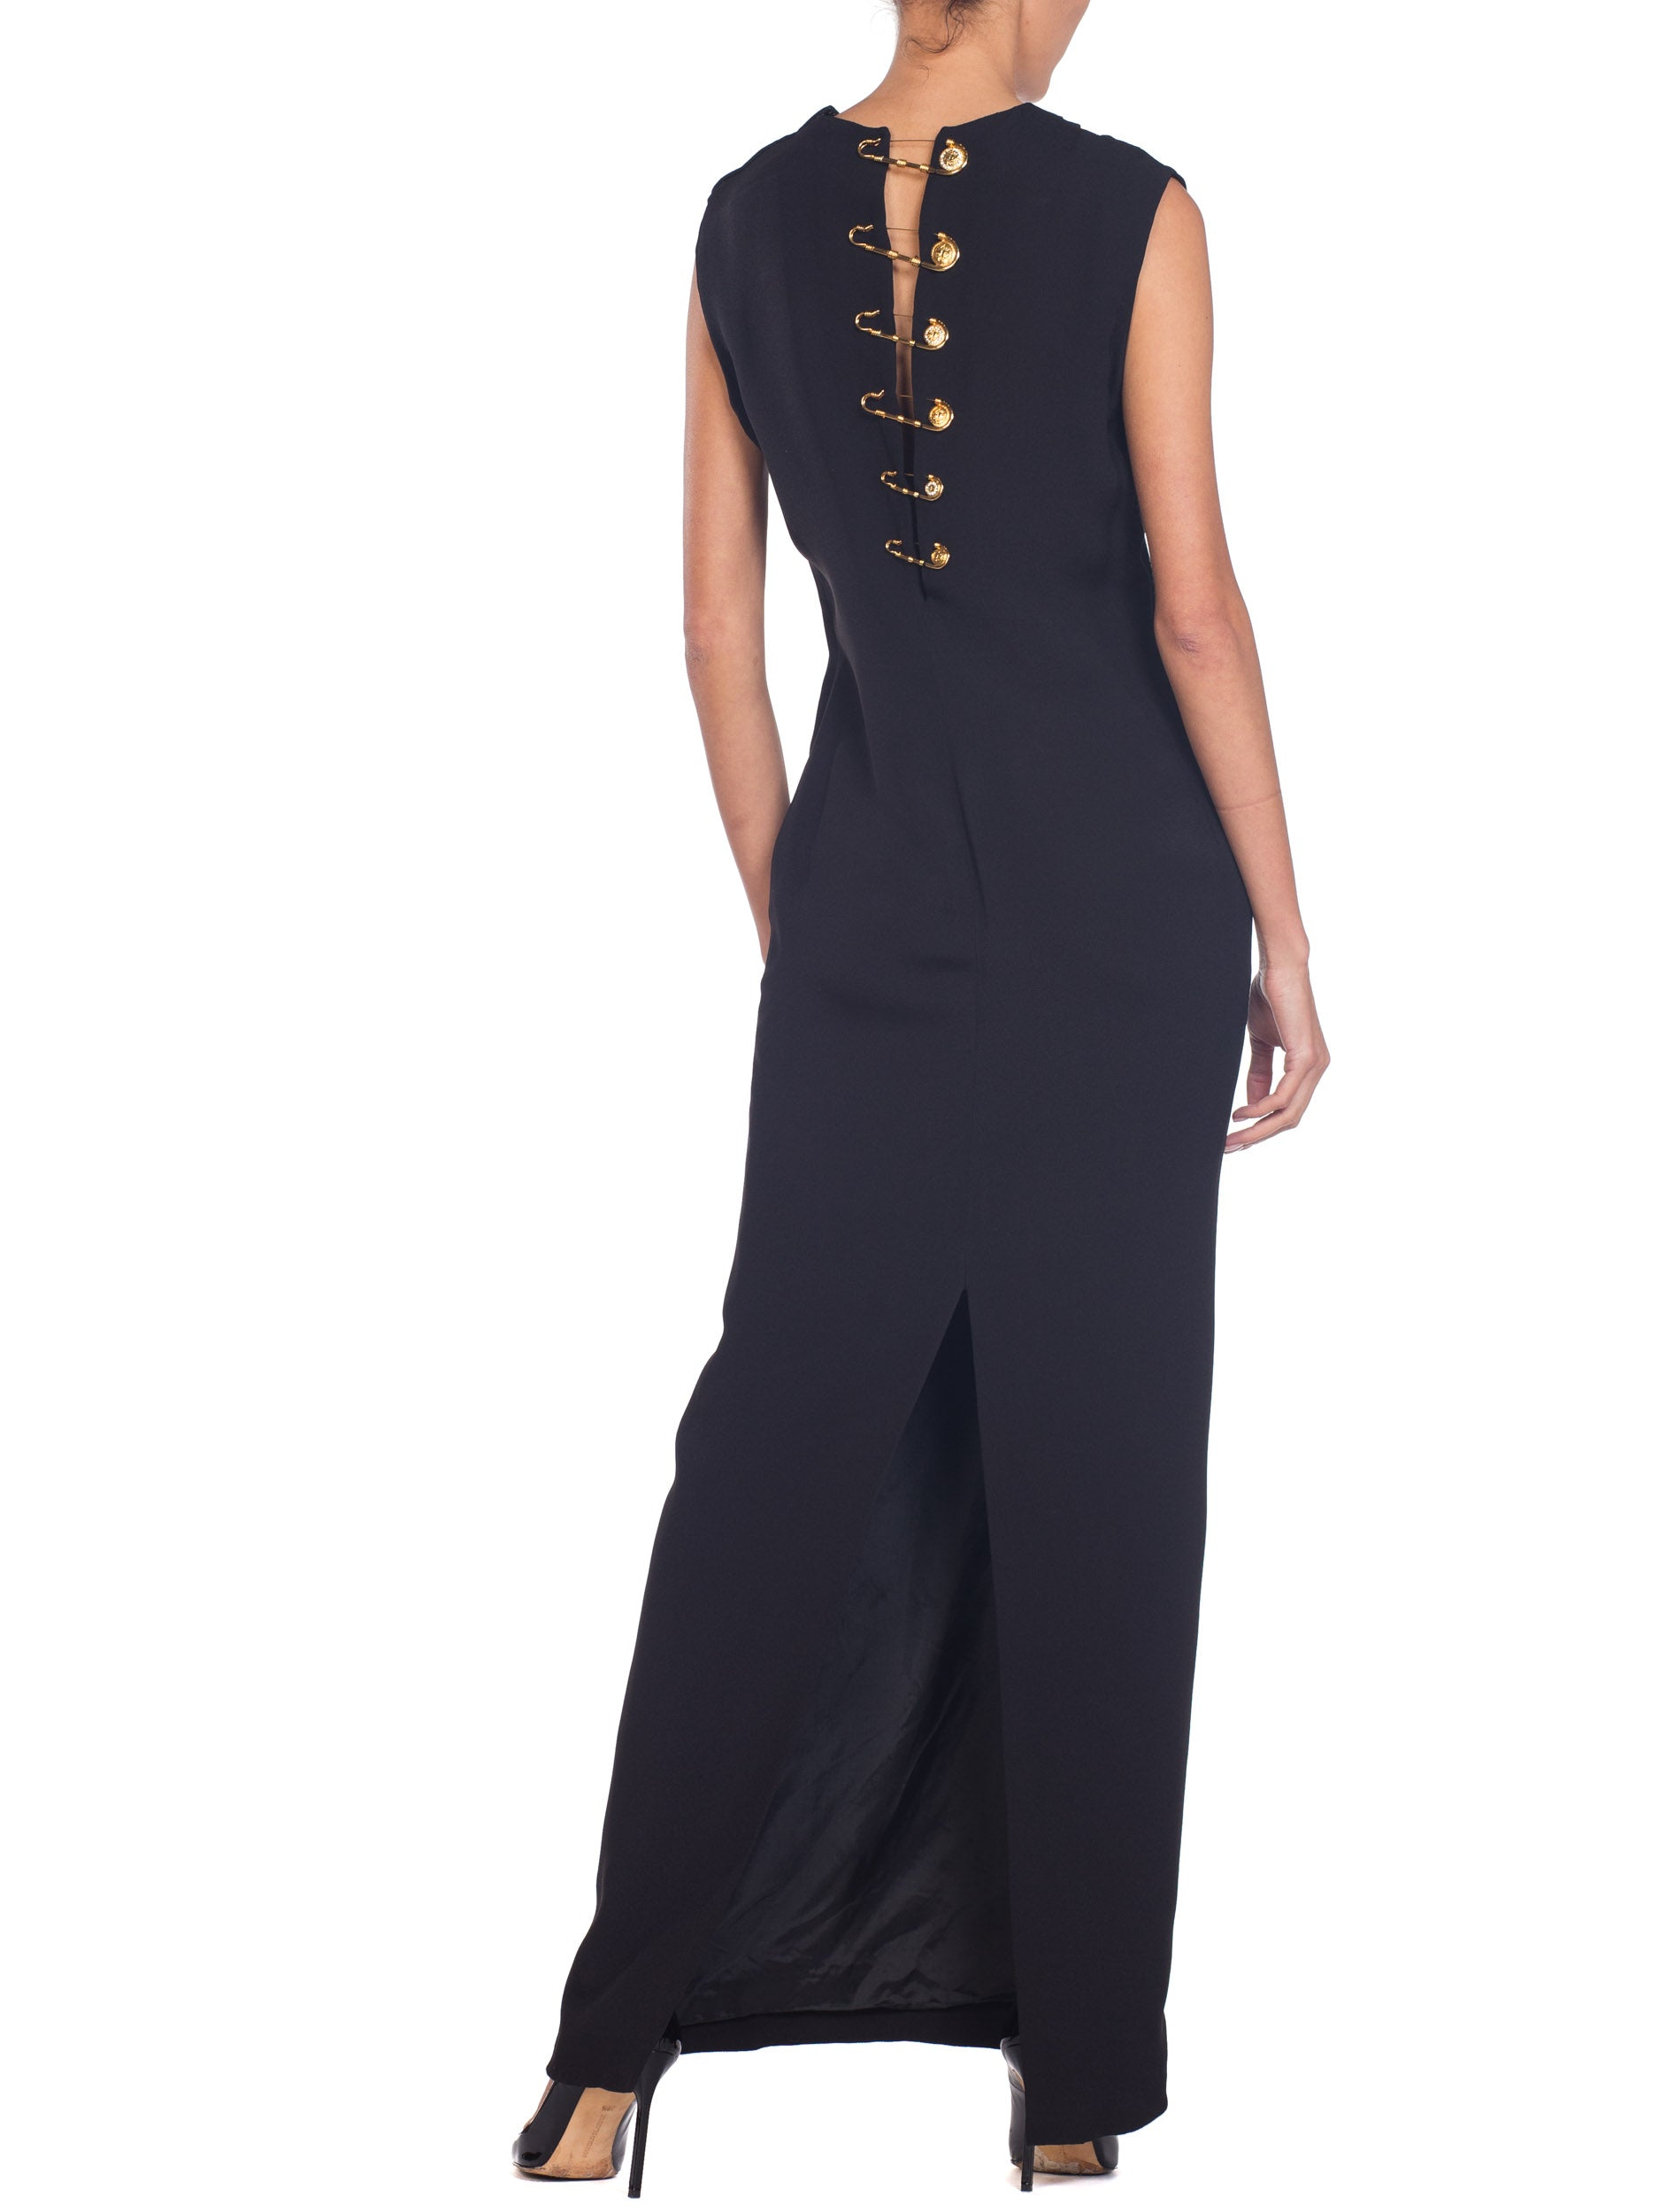 1990S GIANNI VERSACE Black Silk Crepe Gold Safey Pin Gown